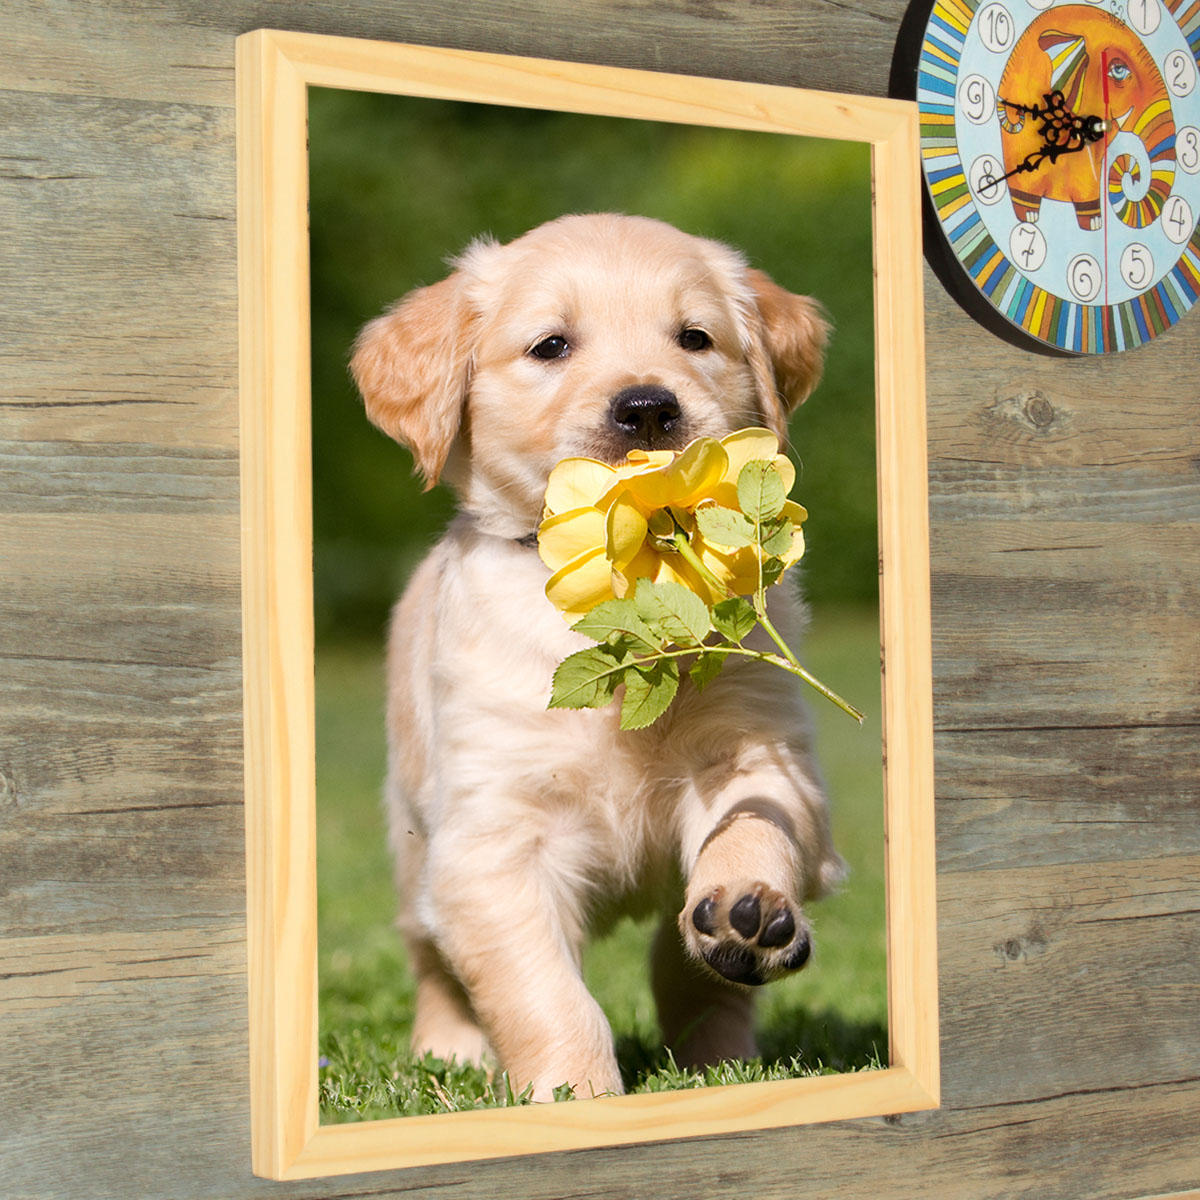 16 Inch Hanging Picture Frames Wood Photo Frame Photo Wall Home Wall ...